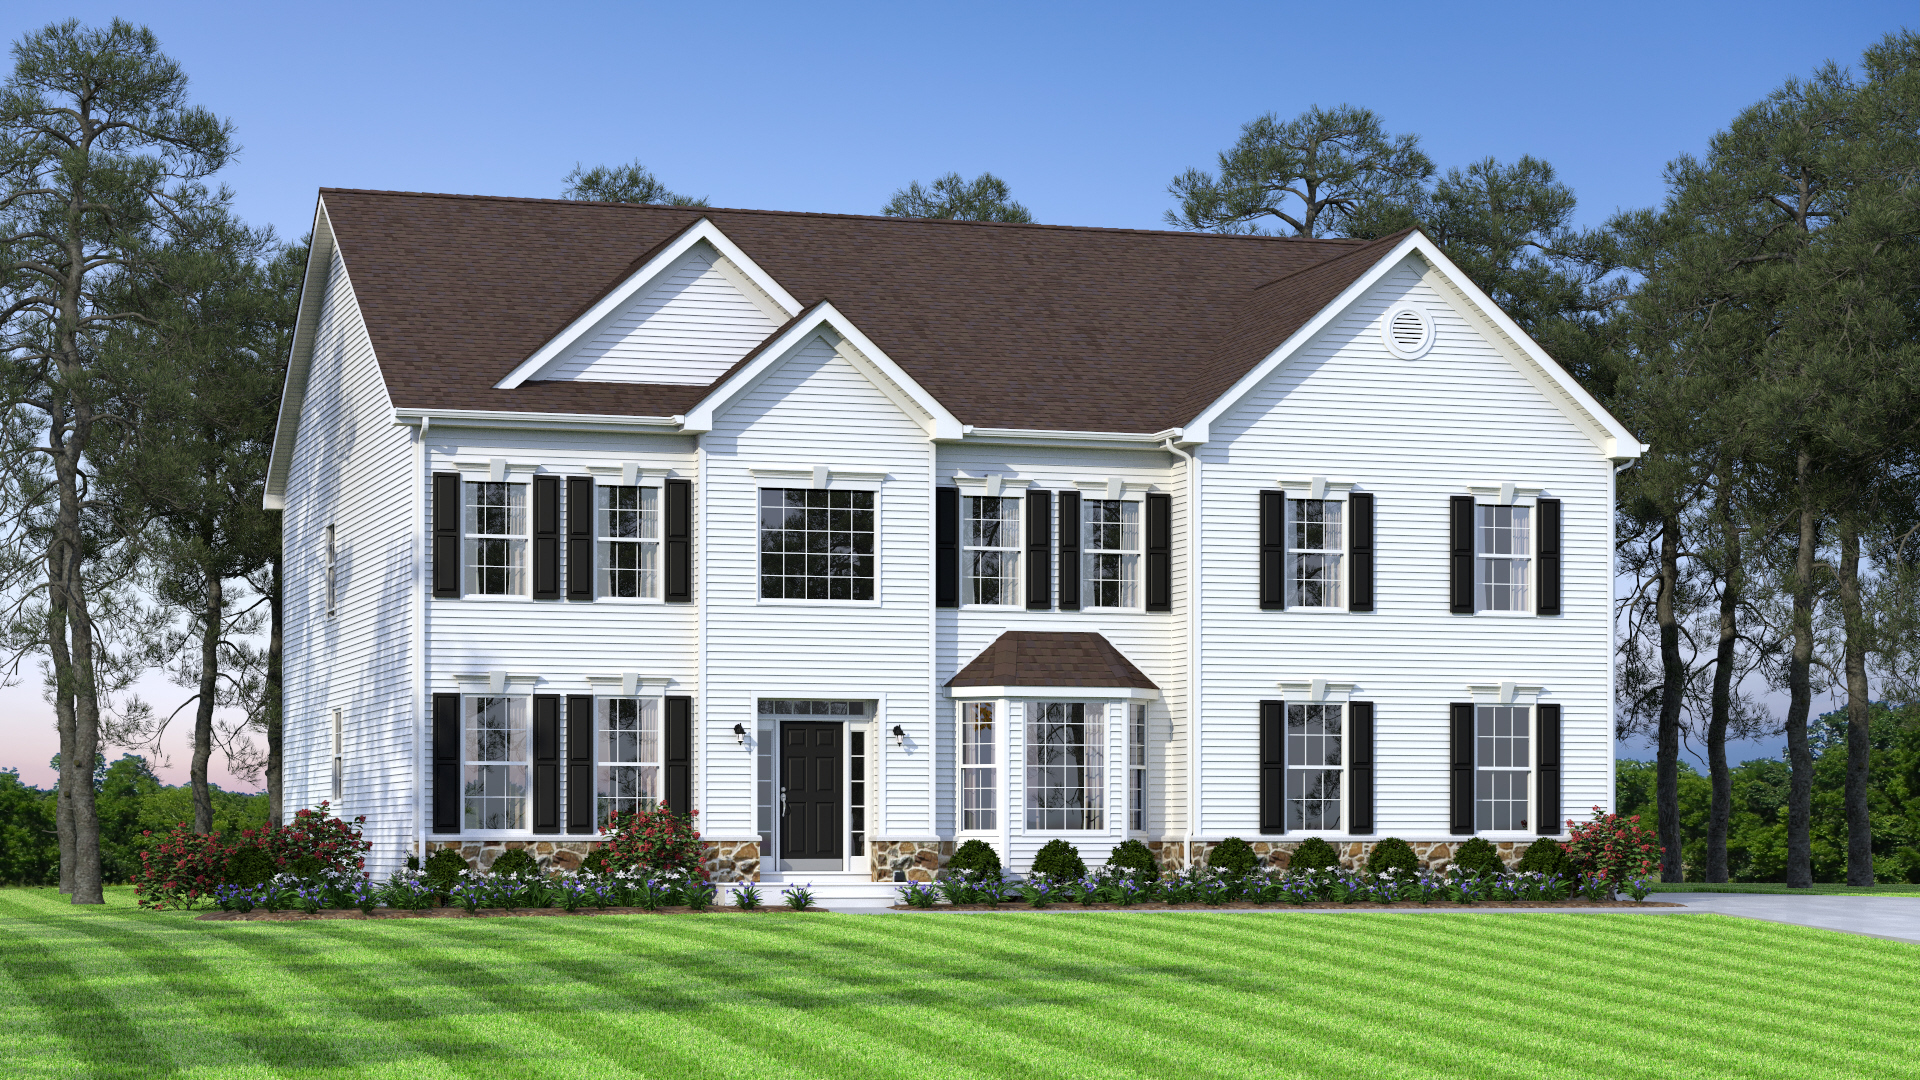 The Brandywine  3,700 sf / 4 br / 2.5 ba / 2 car garage Starting at $356,990